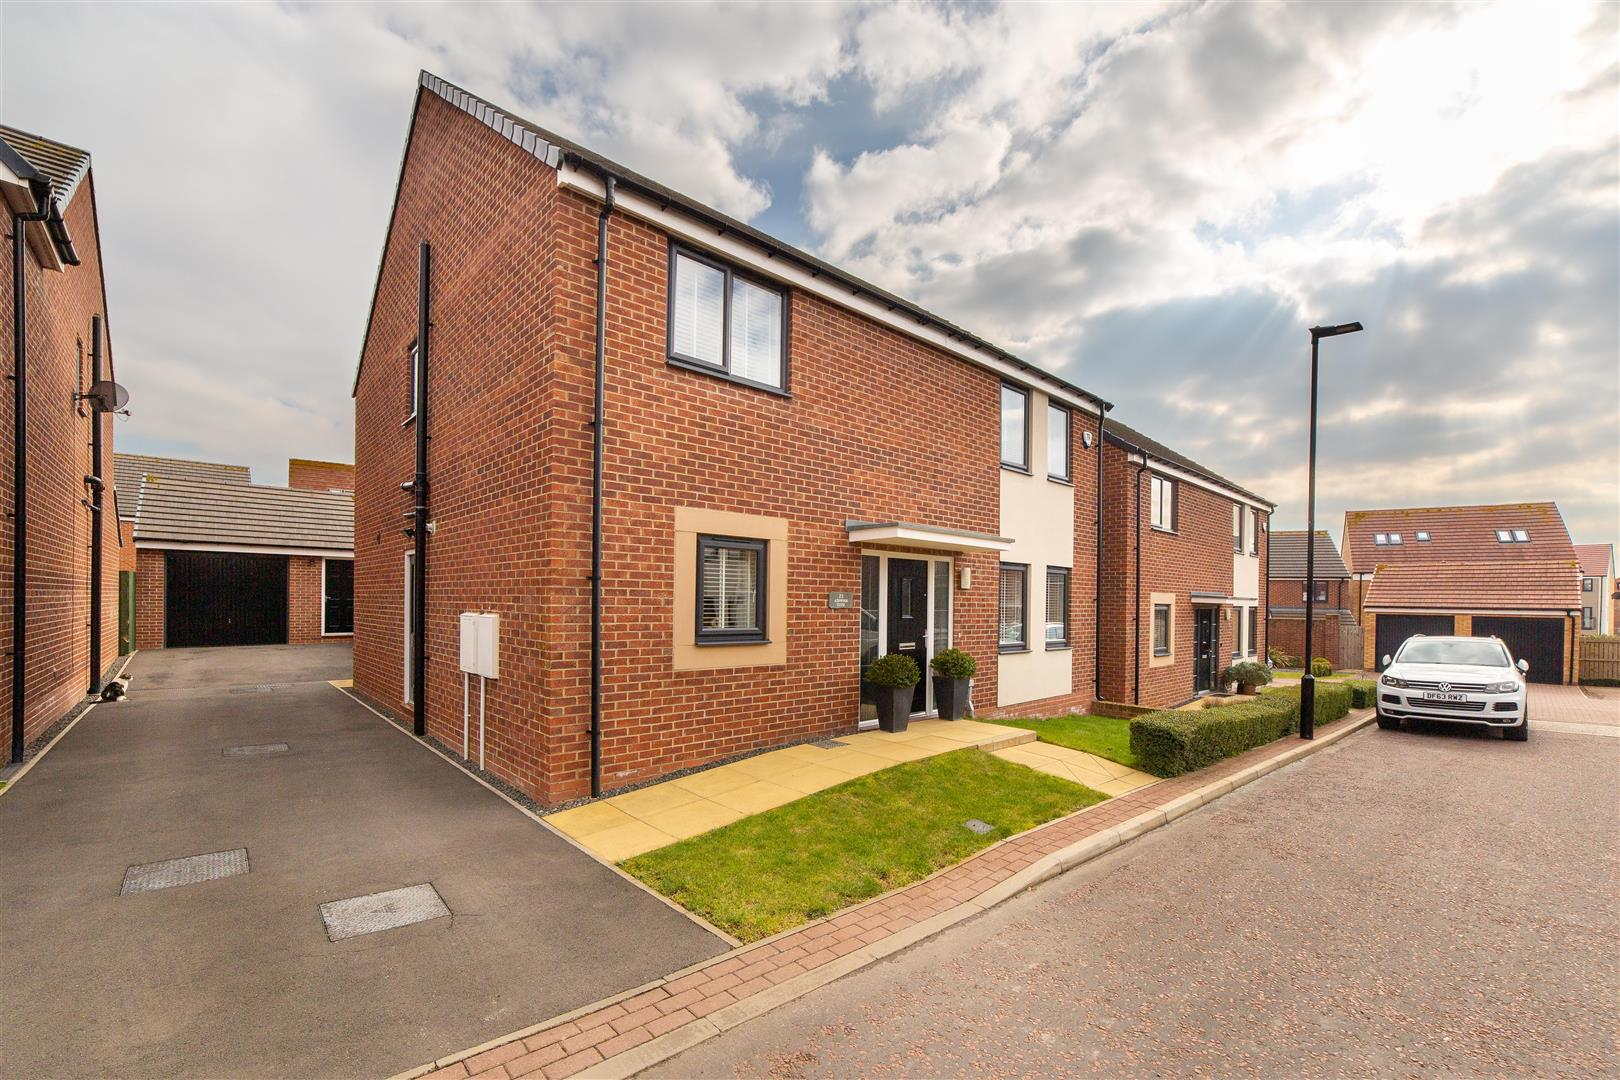 3 bed detached house for sale in Ashwood Close, Great Park - Property Image 1